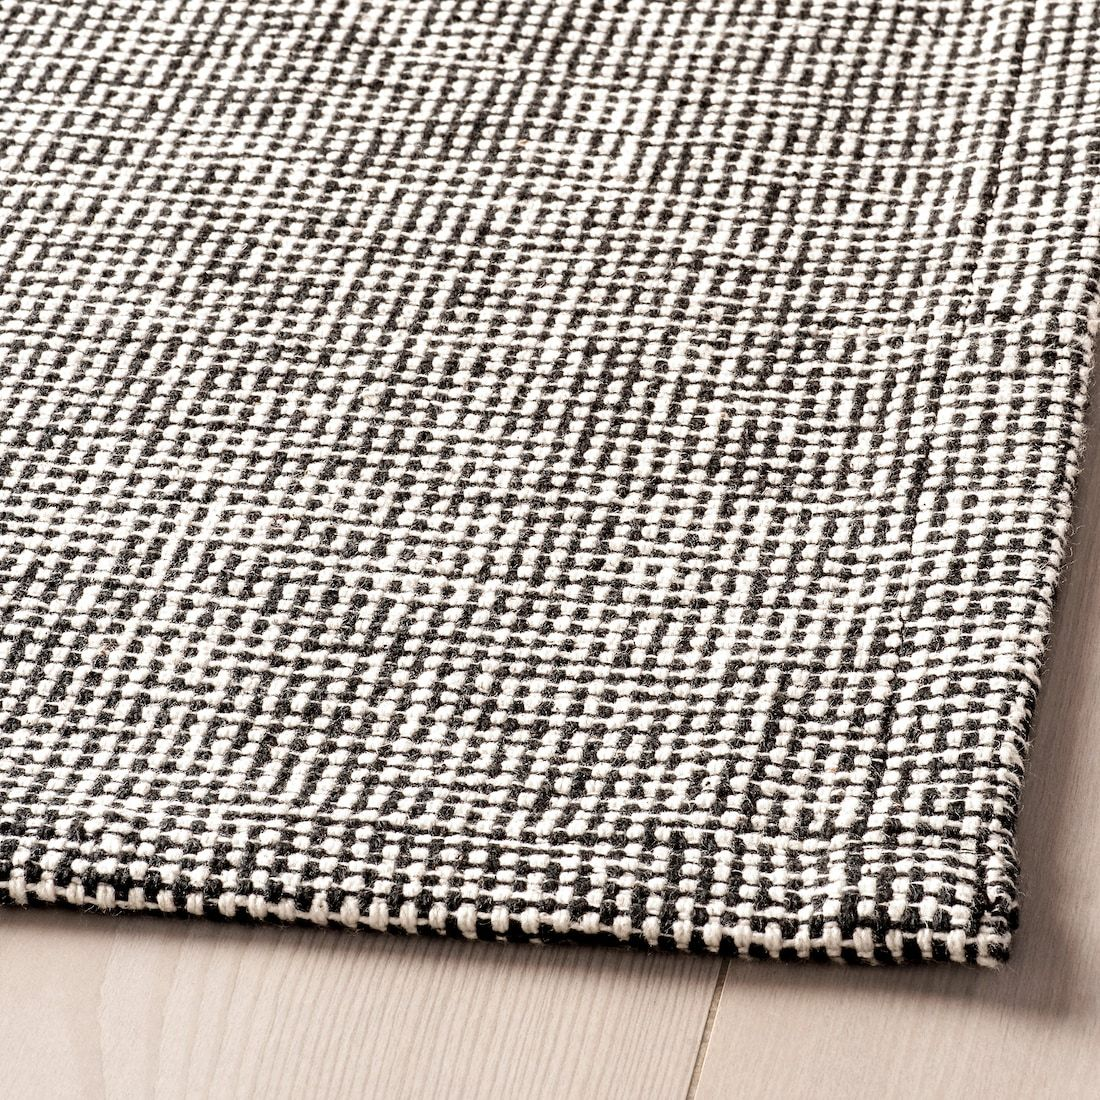 Tiphede Rug Flatwoven Gray White 5 1 X7 3 Ikea In 2020 Flatwoven Flat Woven Rug Ikea Rug